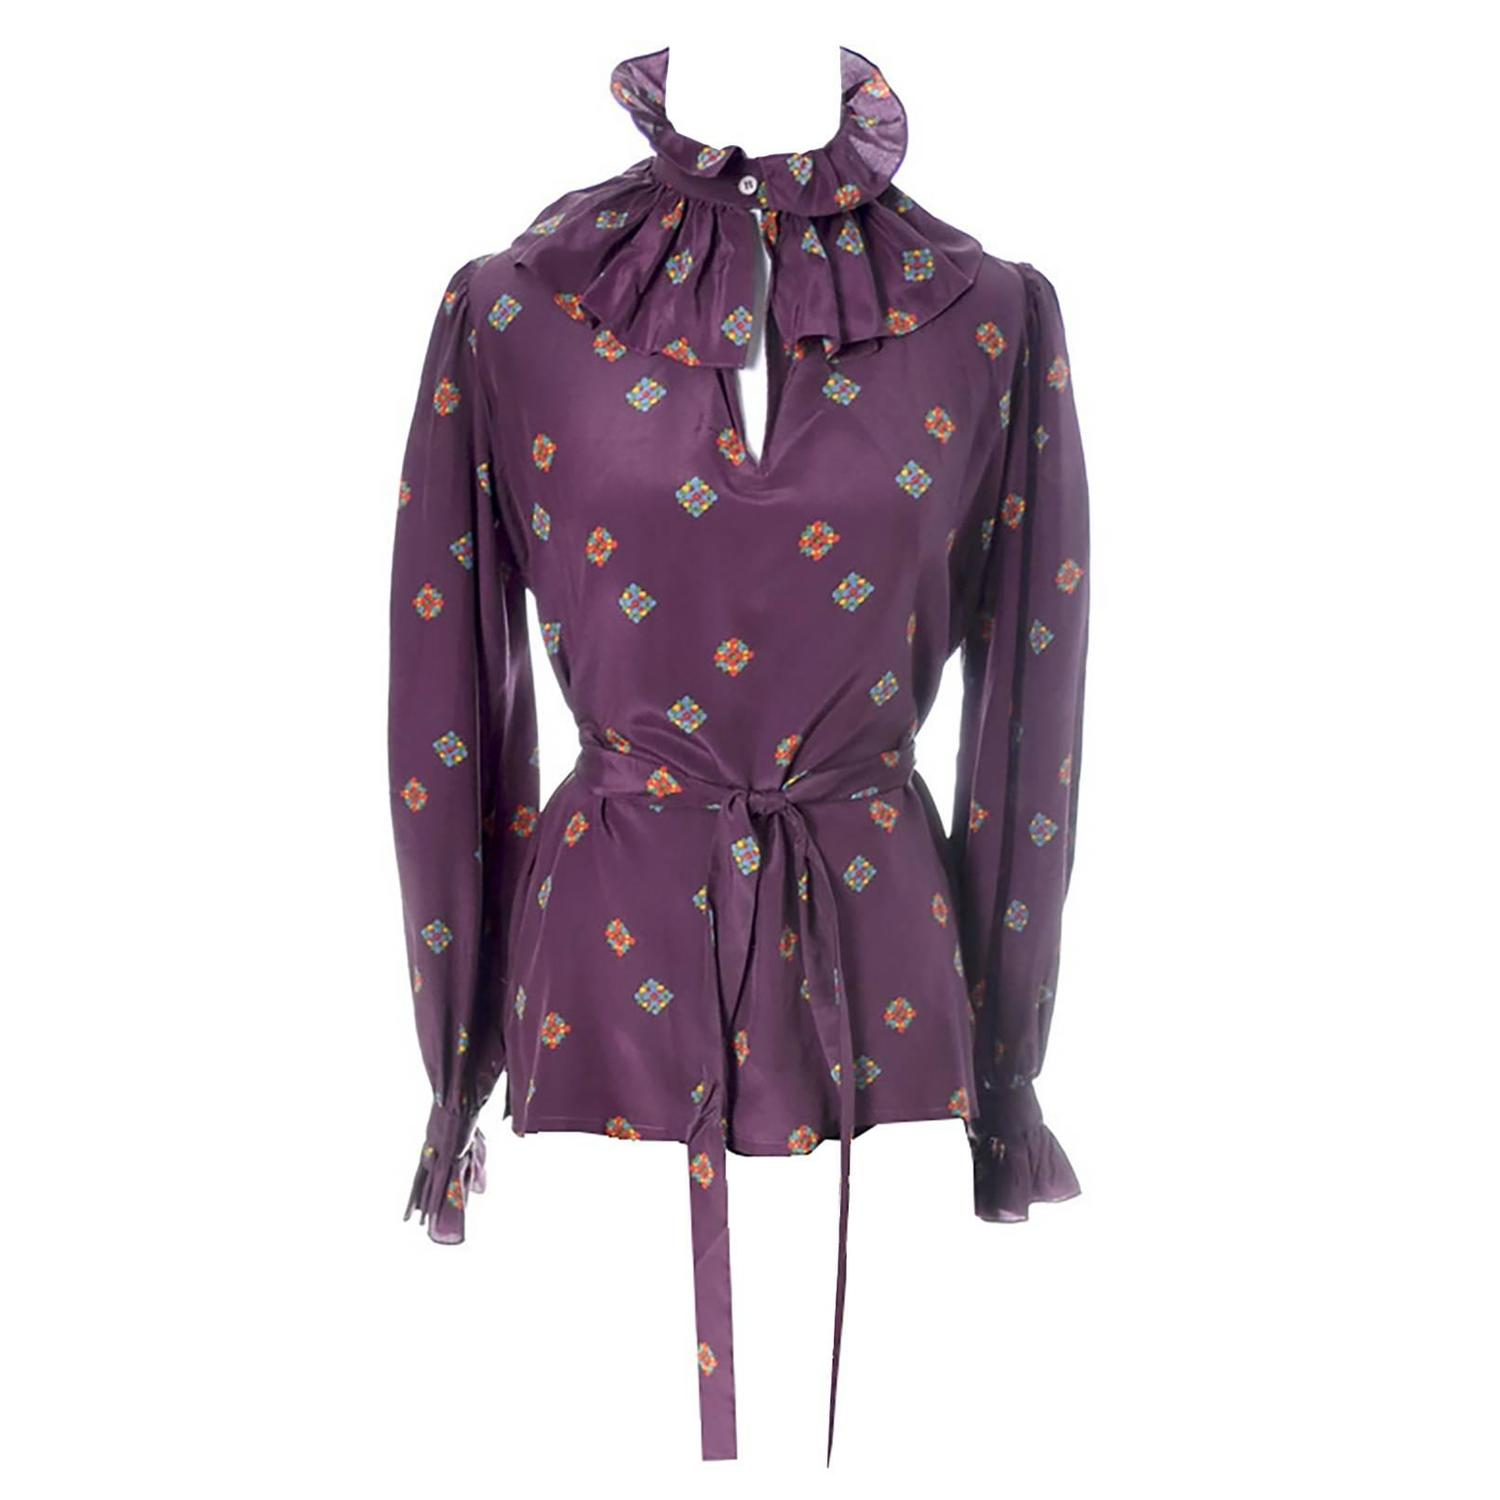 47d79f925d52e YSL Vintage Silk Blouse W Ruffle Bow and Sash Yves Saint Laurent Rive Gauche  1970s For Sale at 1stdibs